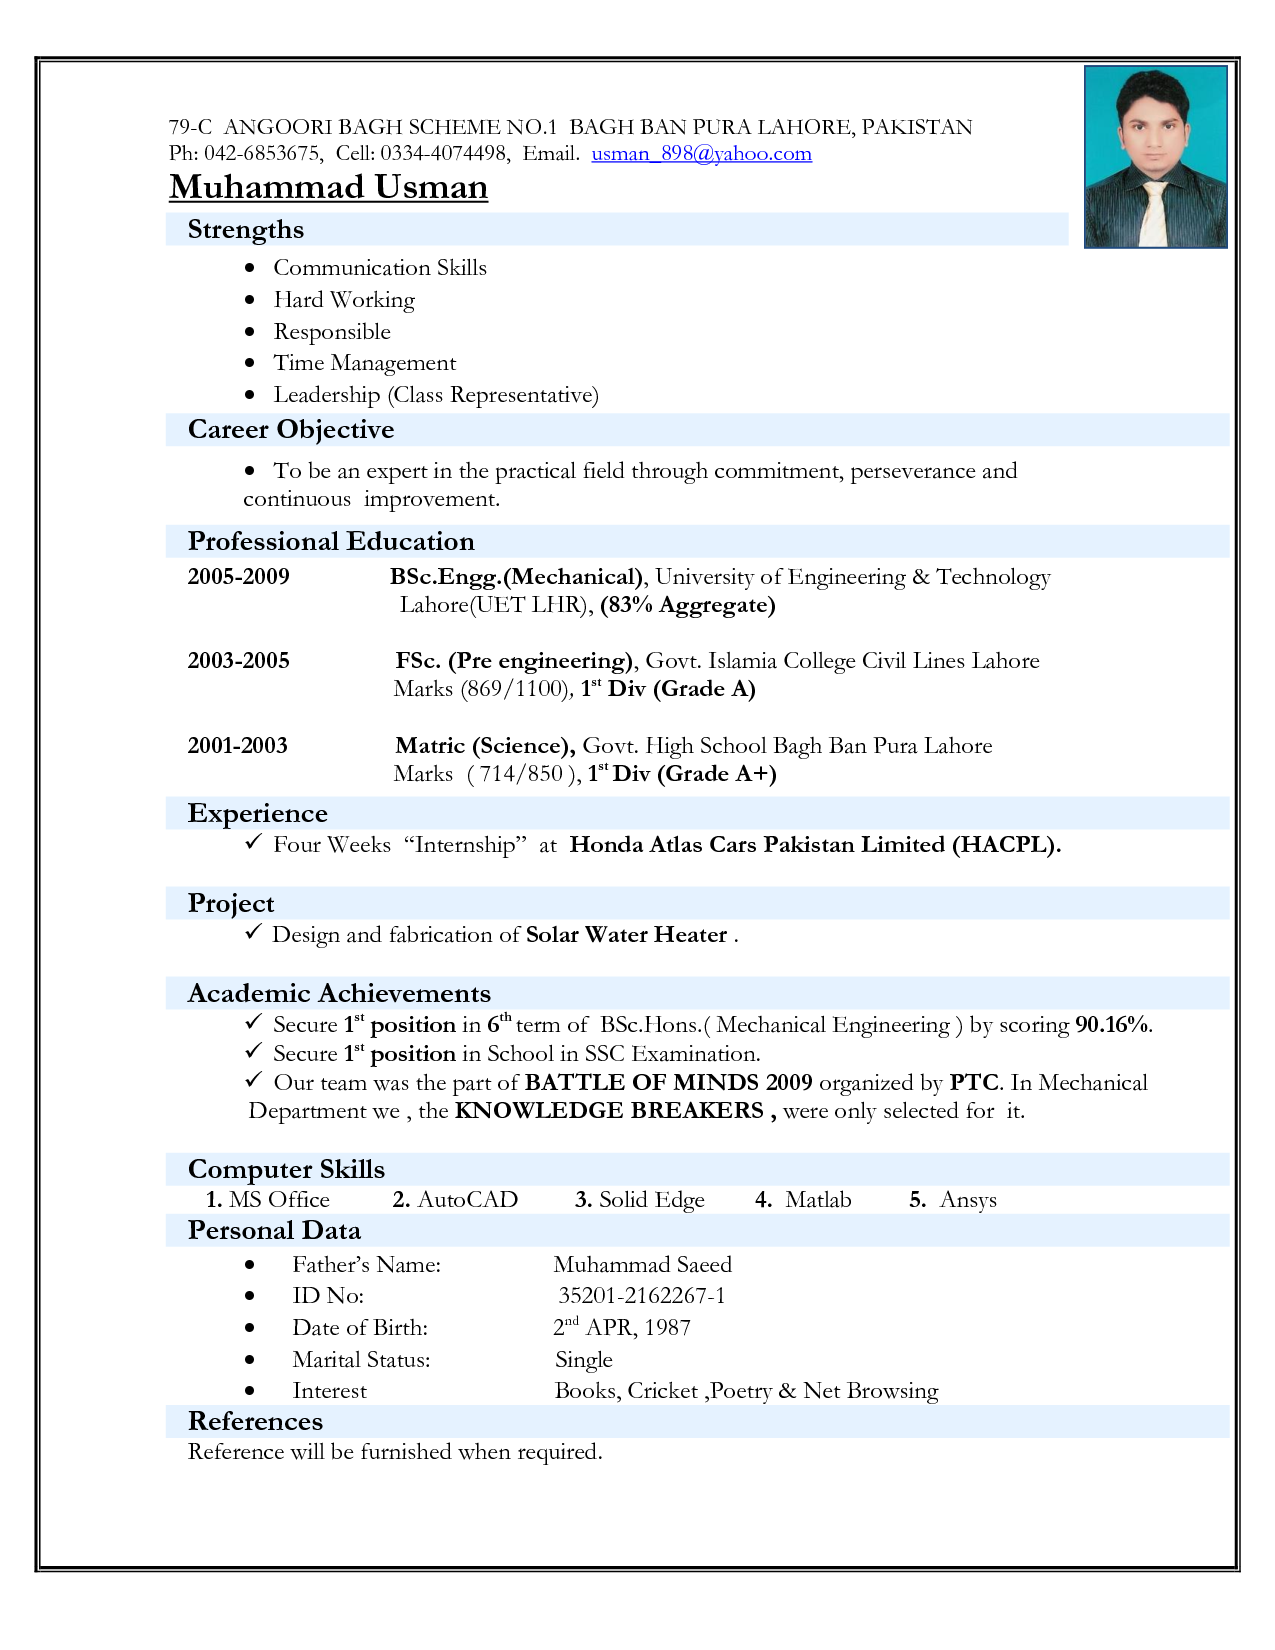 Marketing expertise resume